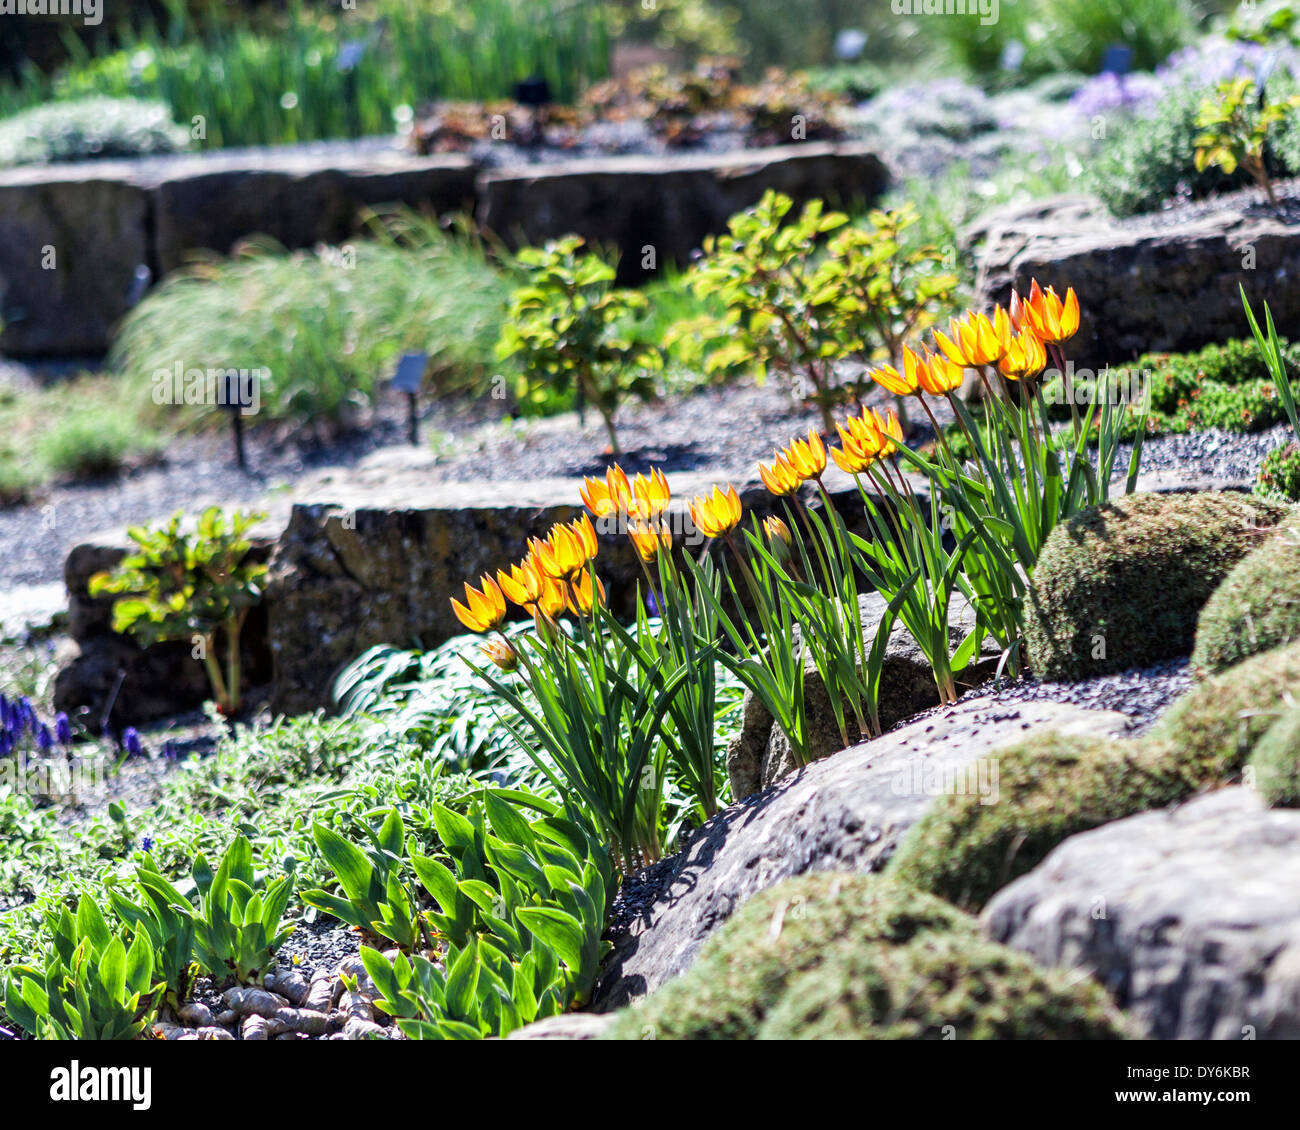 Prepossessing Alpine Garden Rockery Stock Photos  Alpine Garden Rockery Stock  With Goodlooking Yellow Tulips And New Growth In The Alpine Garden And Rockery At Kew Gardens  In Spring With Enchanting Fairy Gone Garden Also Garden Centre Jobs London In Addition Lumley Gardens And Garden Centres In Bury As Well As Orienta Gardens Additionally Metal Garden From Alamycom With   Goodlooking Alpine Garden Rockery Stock Photos  Alpine Garden Rockery Stock  With Enchanting Yellow Tulips And New Growth In The Alpine Garden And Rockery At Kew Gardens  In Spring And Prepossessing Fairy Gone Garden Also Garden Centre Jobs London In Addition Lumley Gardens From Alamycom